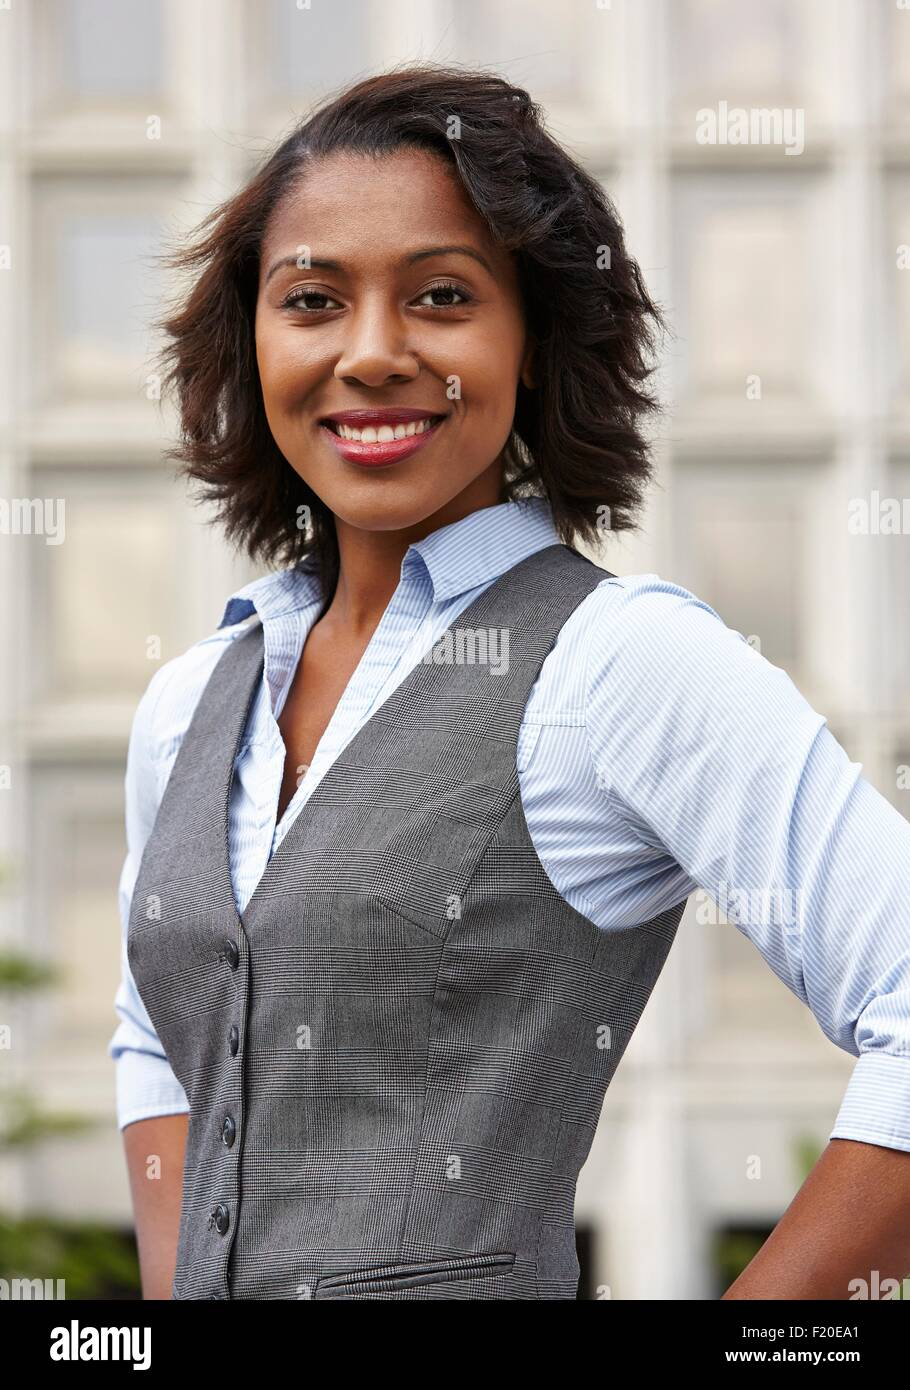 Portrait of young business woman, wearing waistcoat, hands on hips, looking at camera, smiling - Stock Image